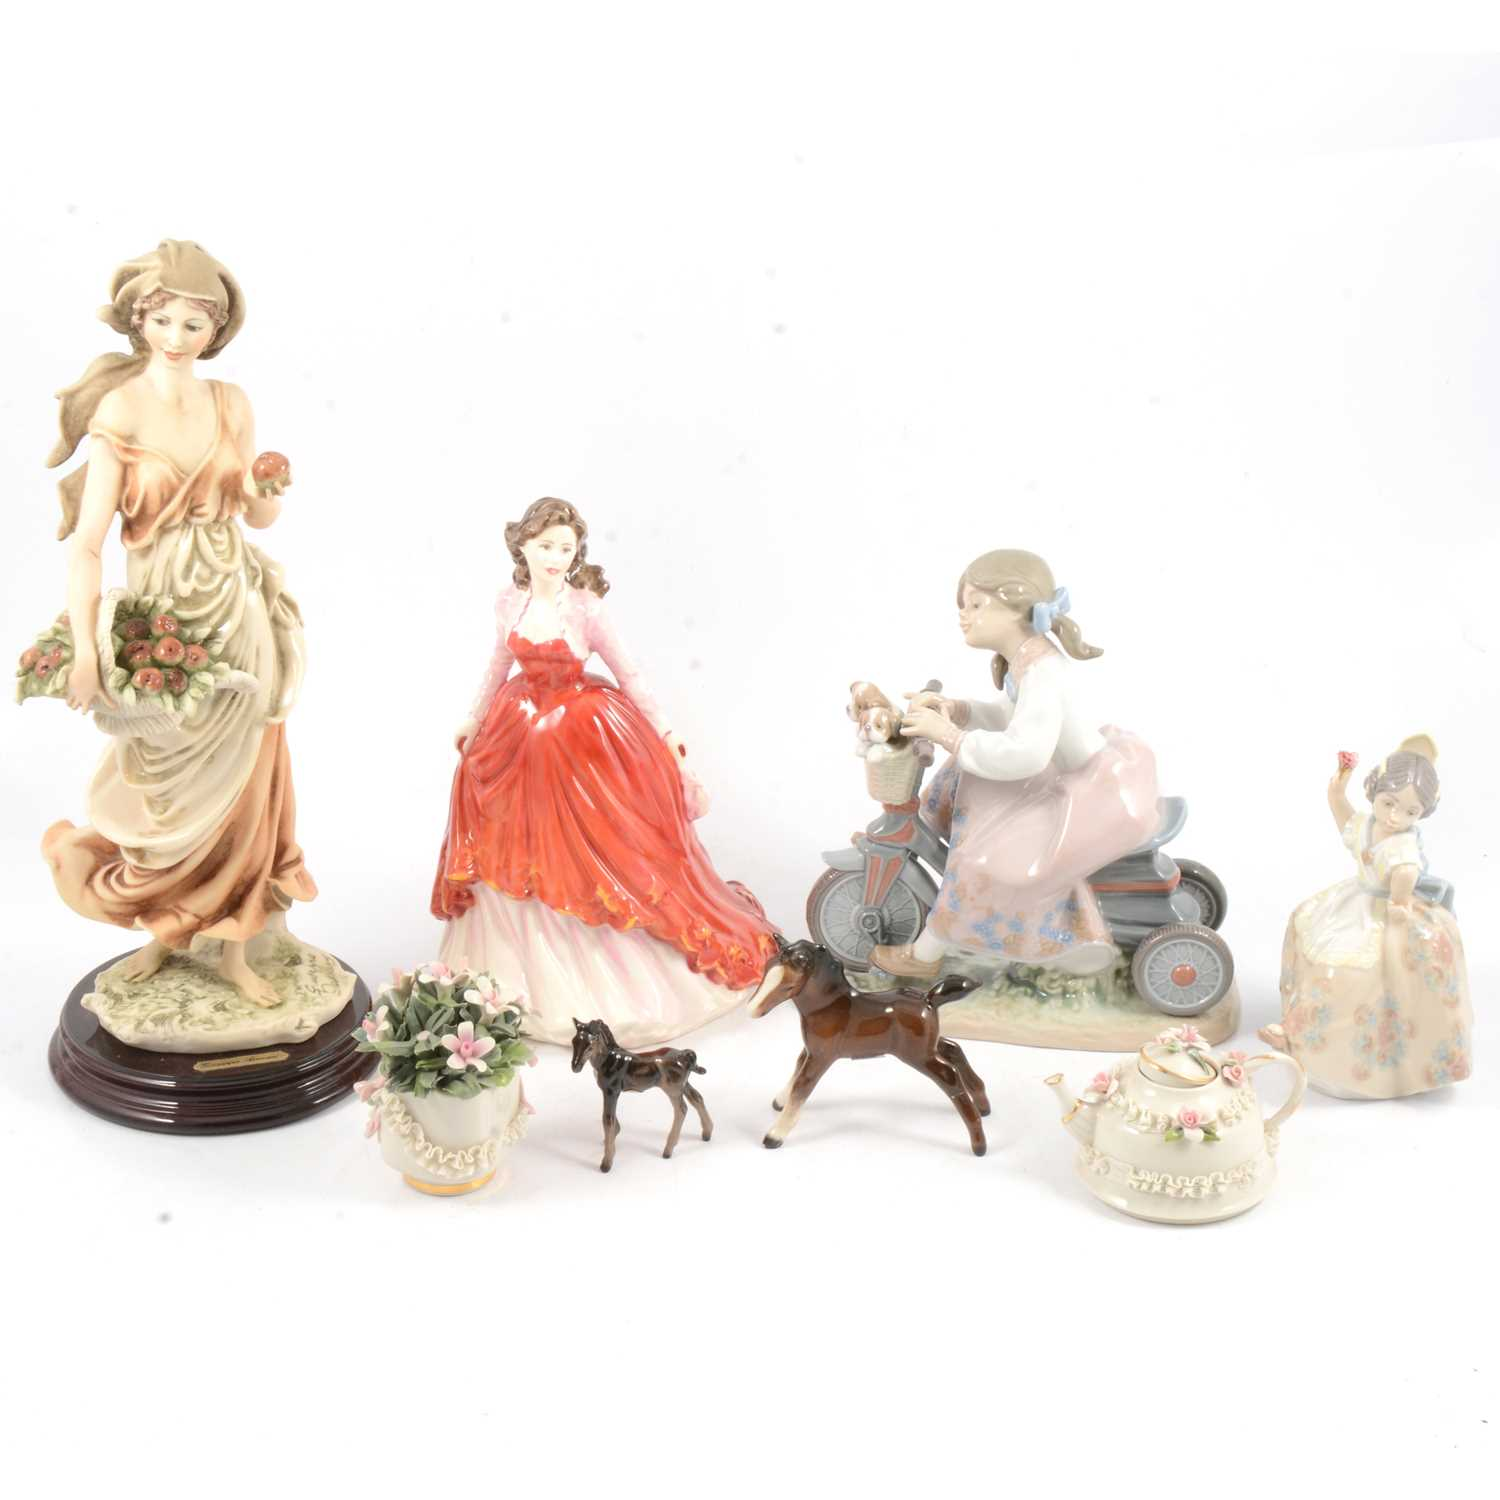 Lot 29 - Guiseppe Armani Florence 'Fresh Fruit', Royal Doulton and LLadro figures and other decorative ceramics.